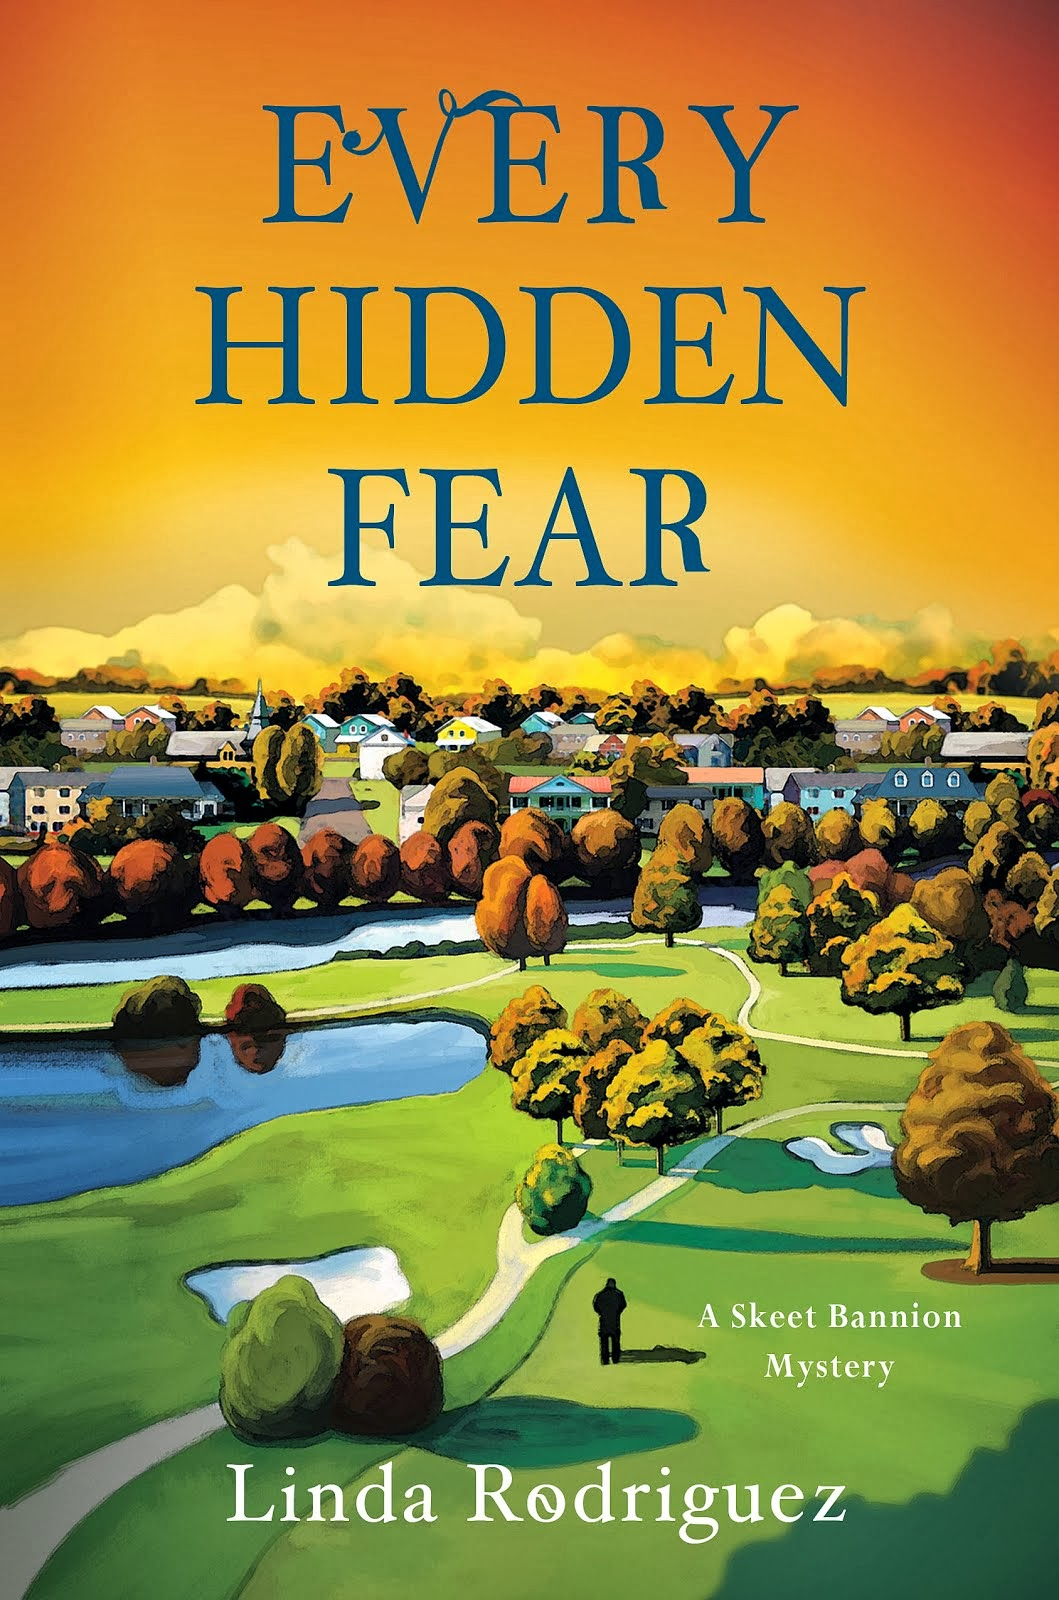 My newest Skeet Bannion mystery novel, EVERY HIDDEN FEAR, is now available for pre-order!